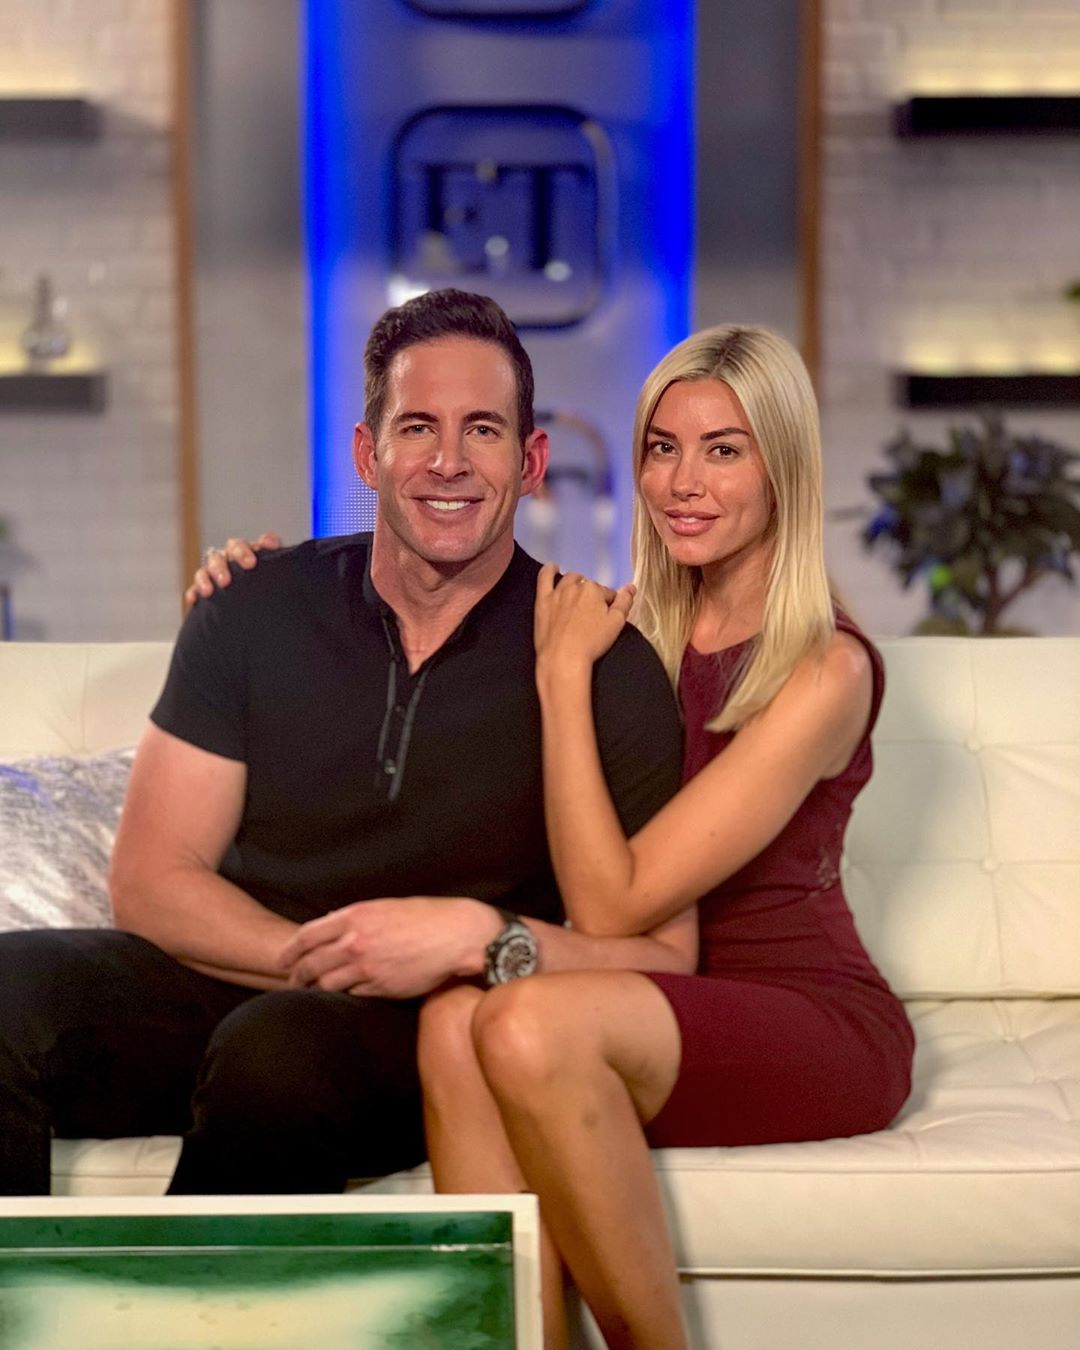 Tarek El Moussa and girlfriend